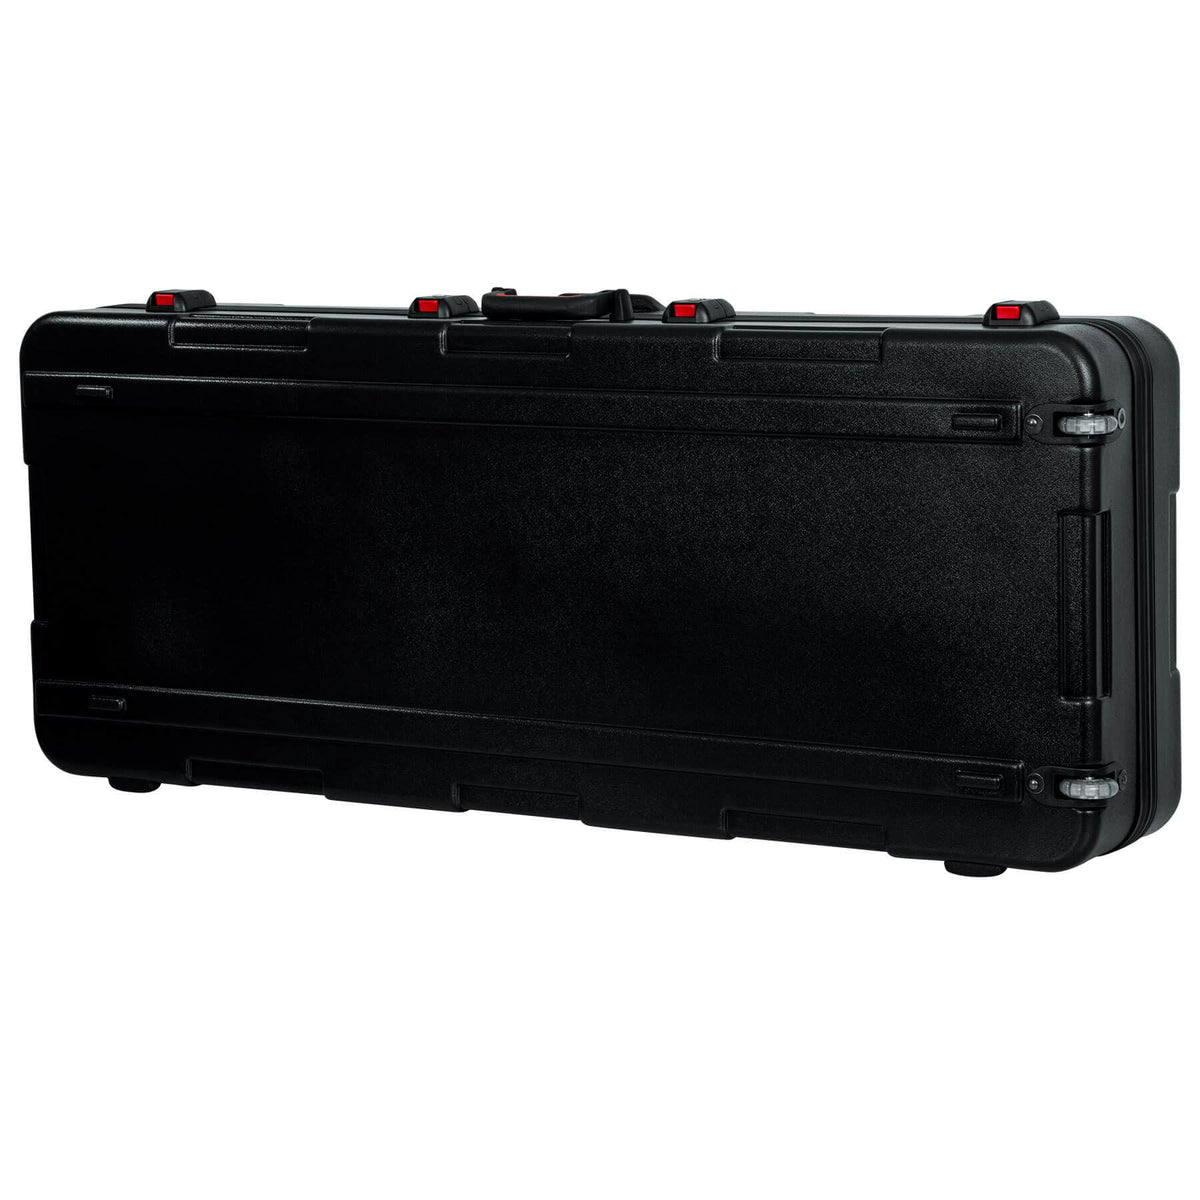 Gator Cases Deep Keyboard Case for Korg Pa3X 76, Pa3XLe, Pa4X-76 Keyboards